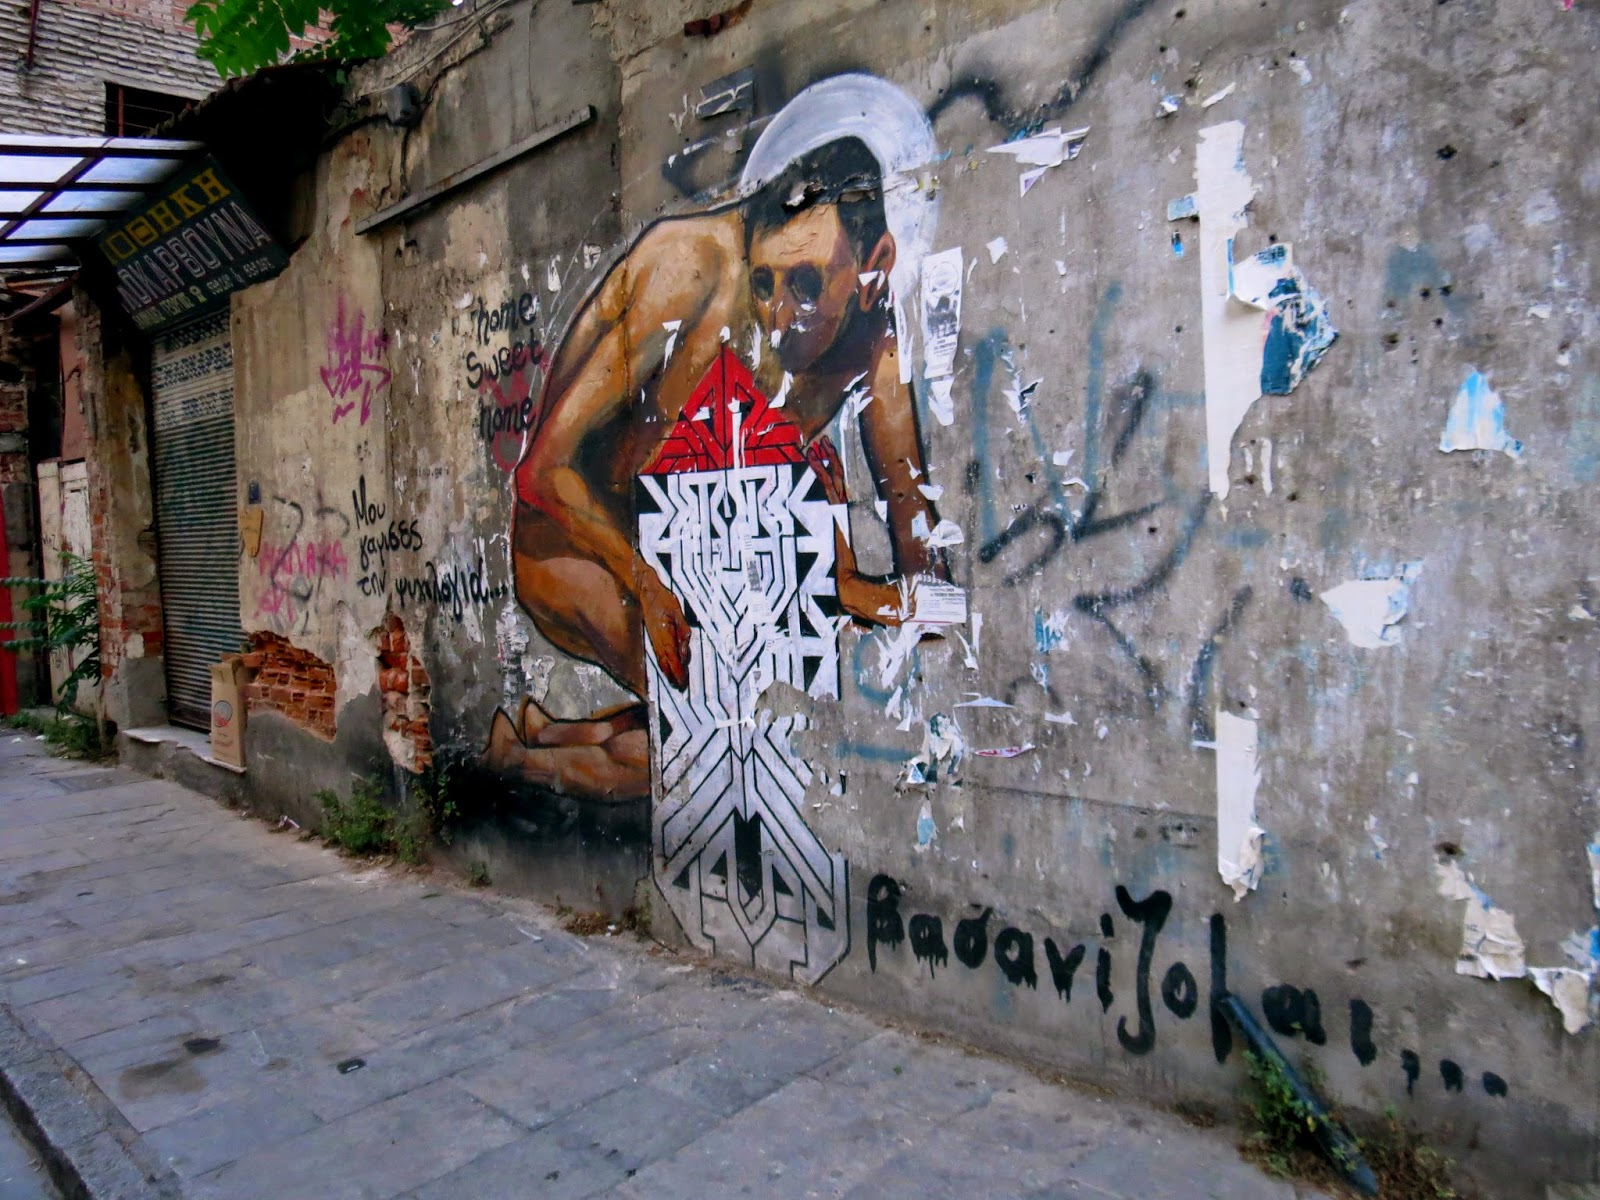 thessaloniki graffiti